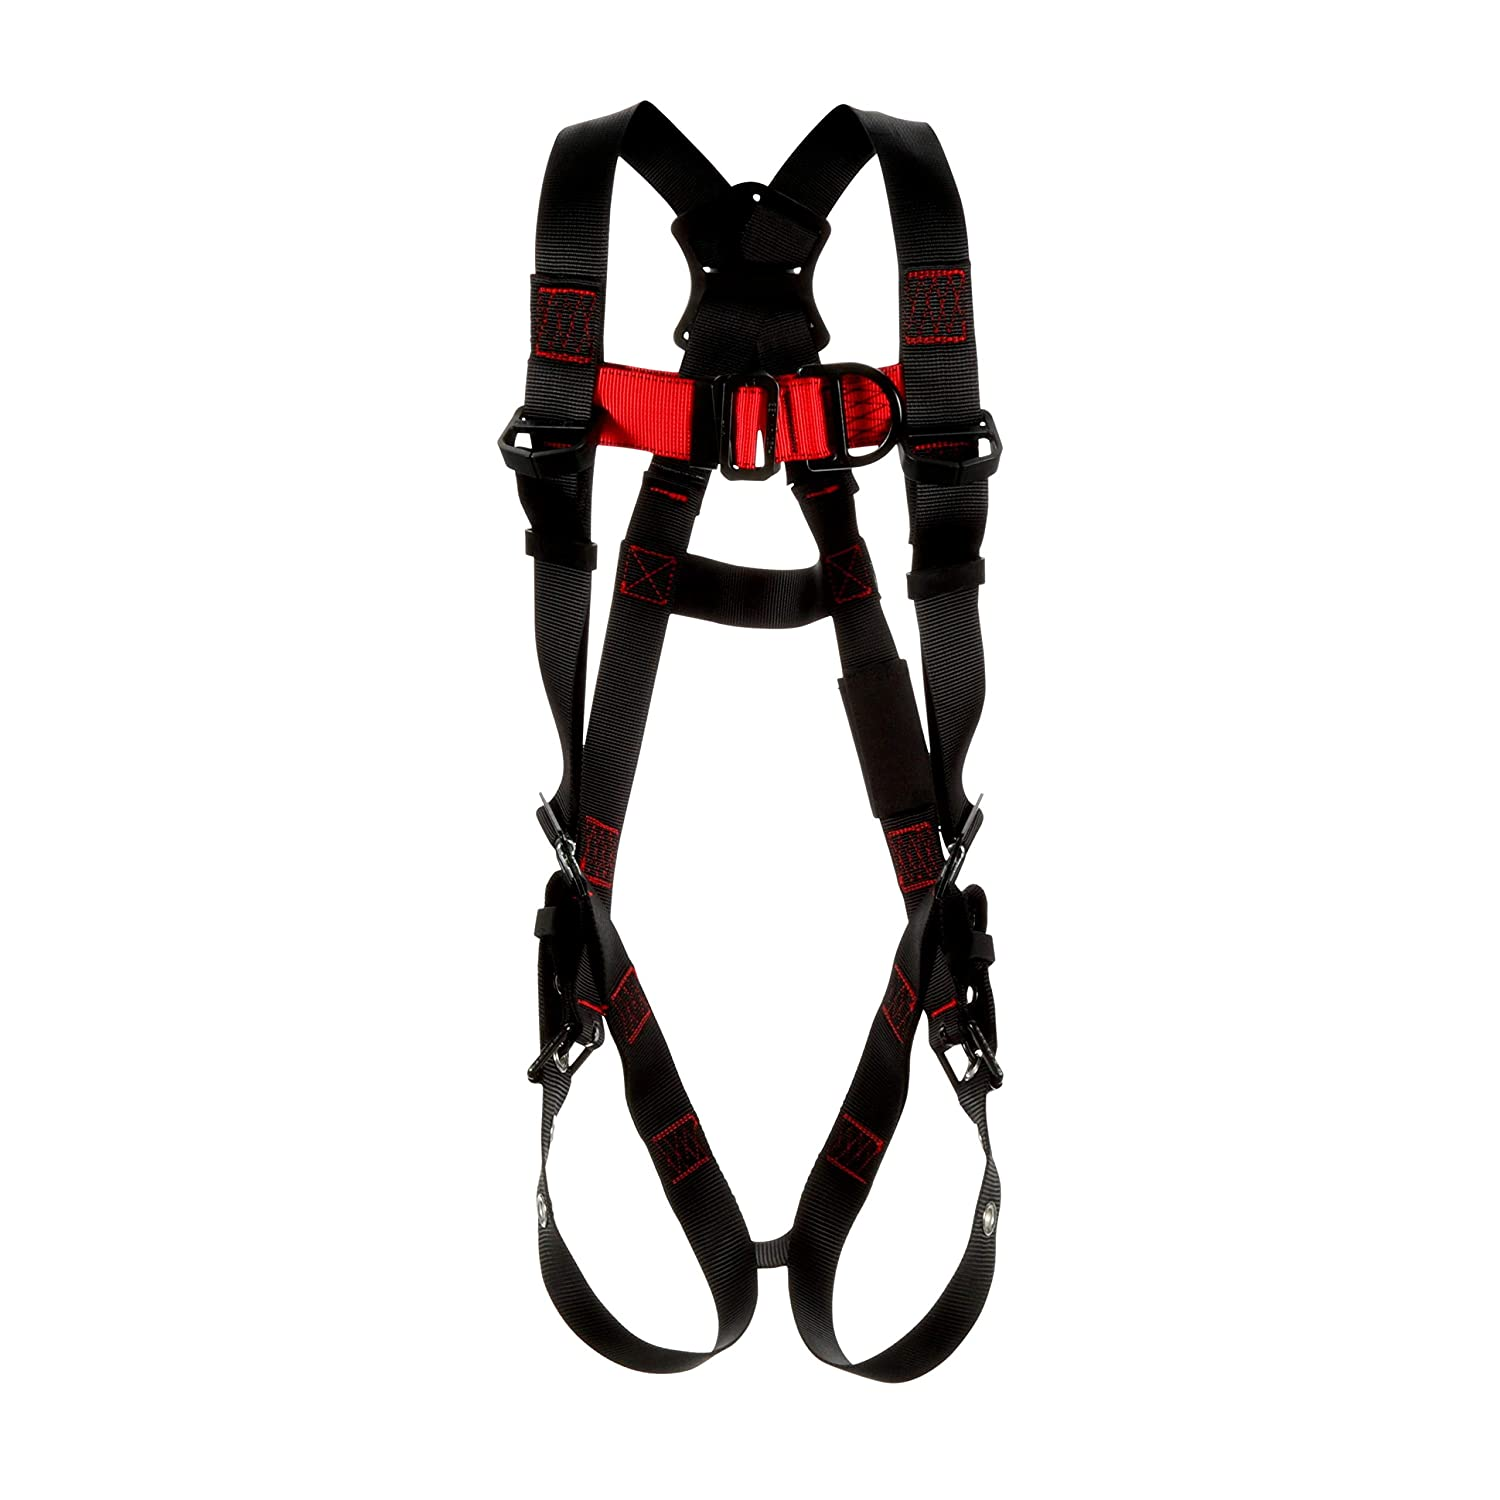 3M Fall Protecta Vest-Style Climbing Harness Med Max 51% OFF shop 1161521 Black